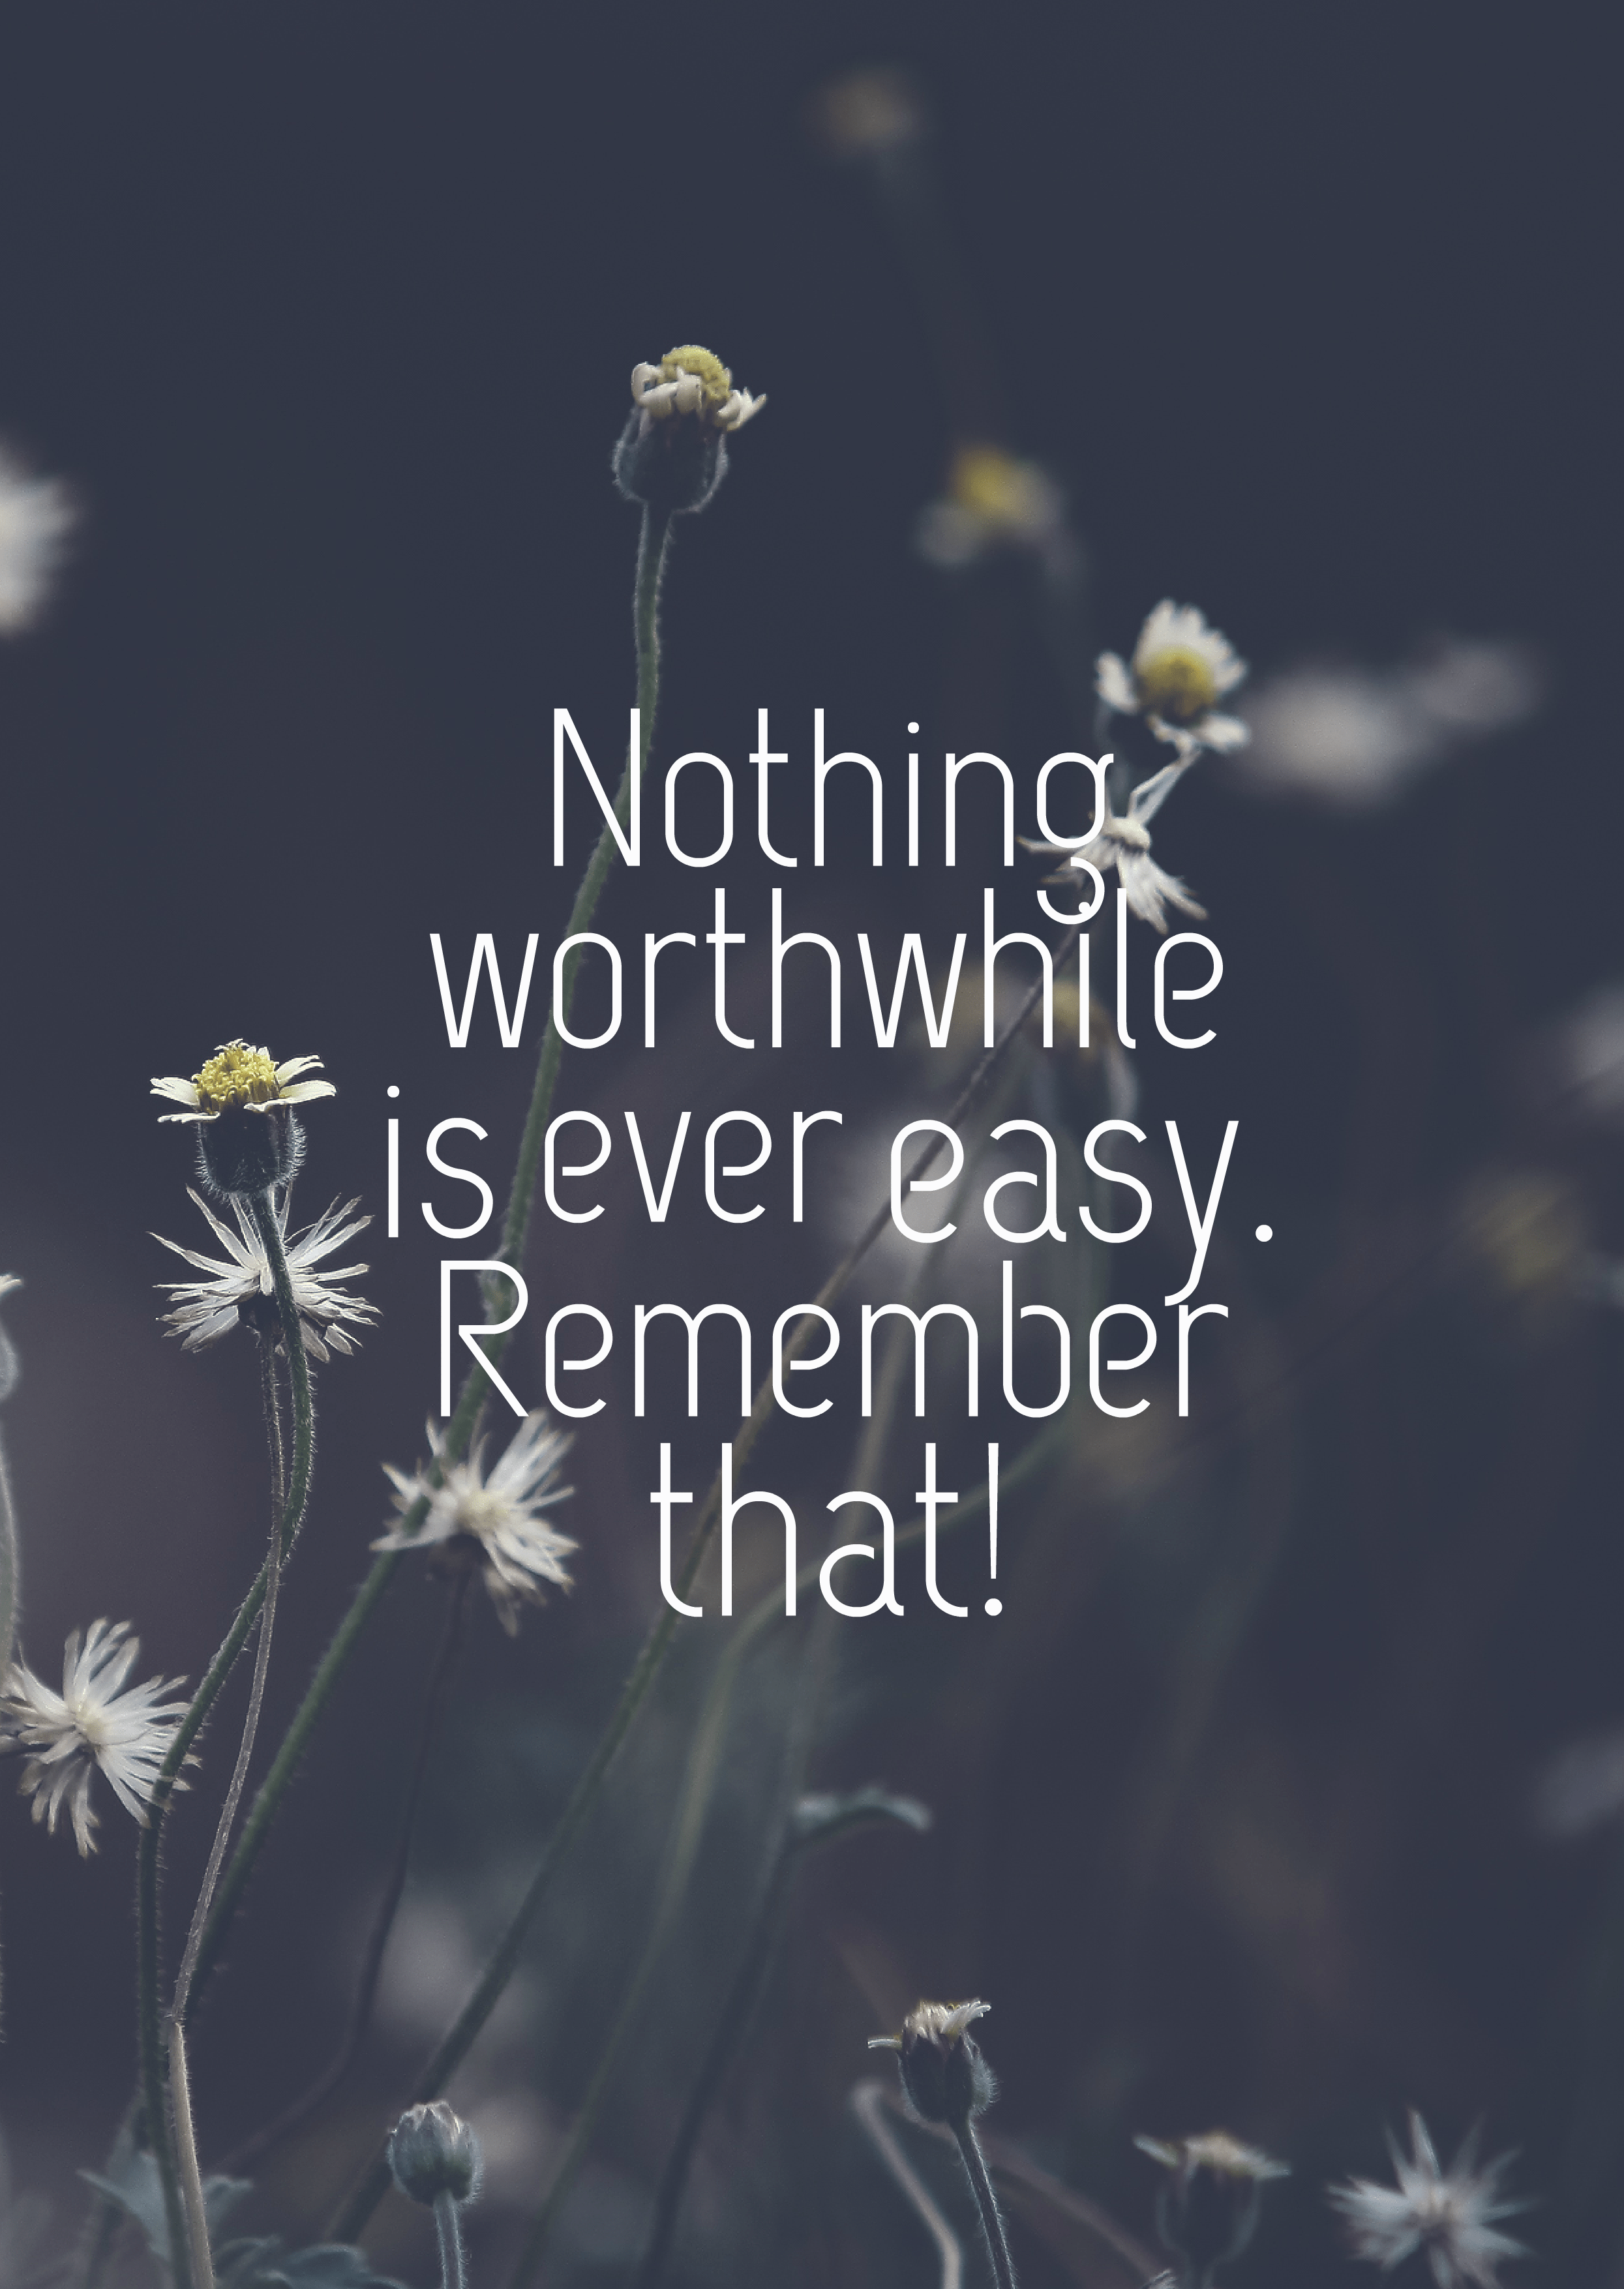 hi-res image of Nothing worthwhile is ever easy. Remember that!